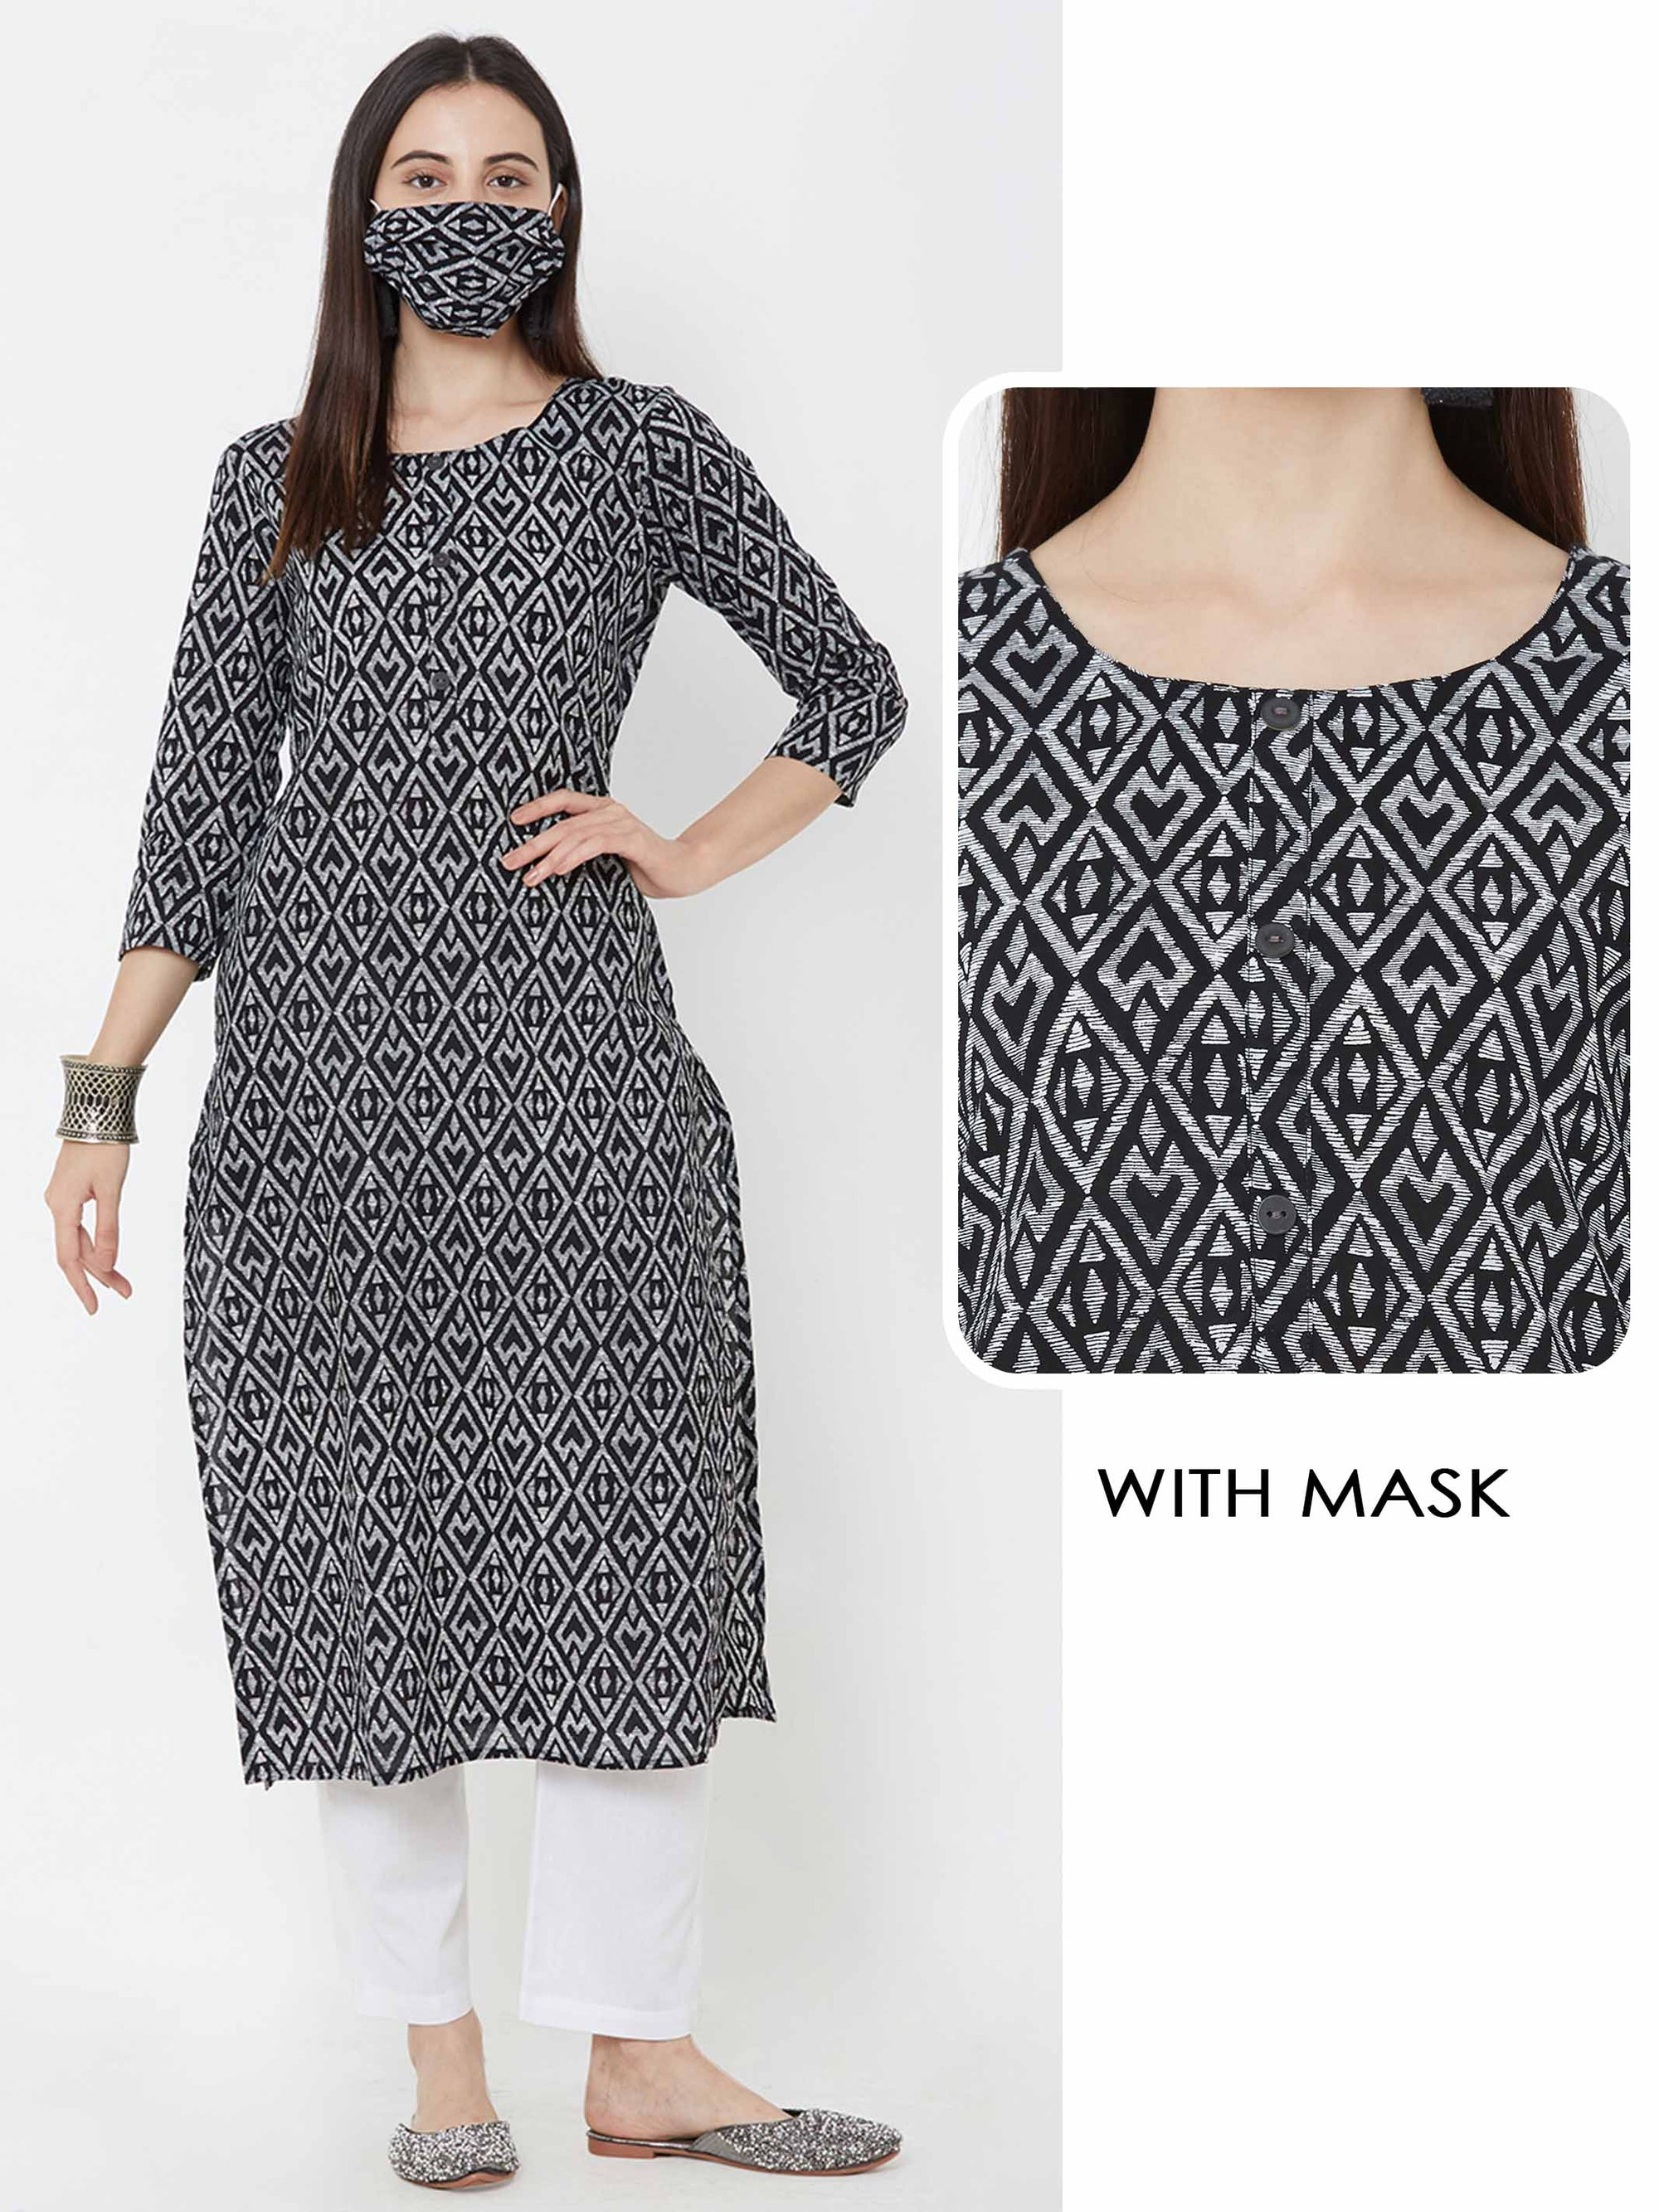 Abstract Diamond printed Cotton Kurta with matching mask – Black